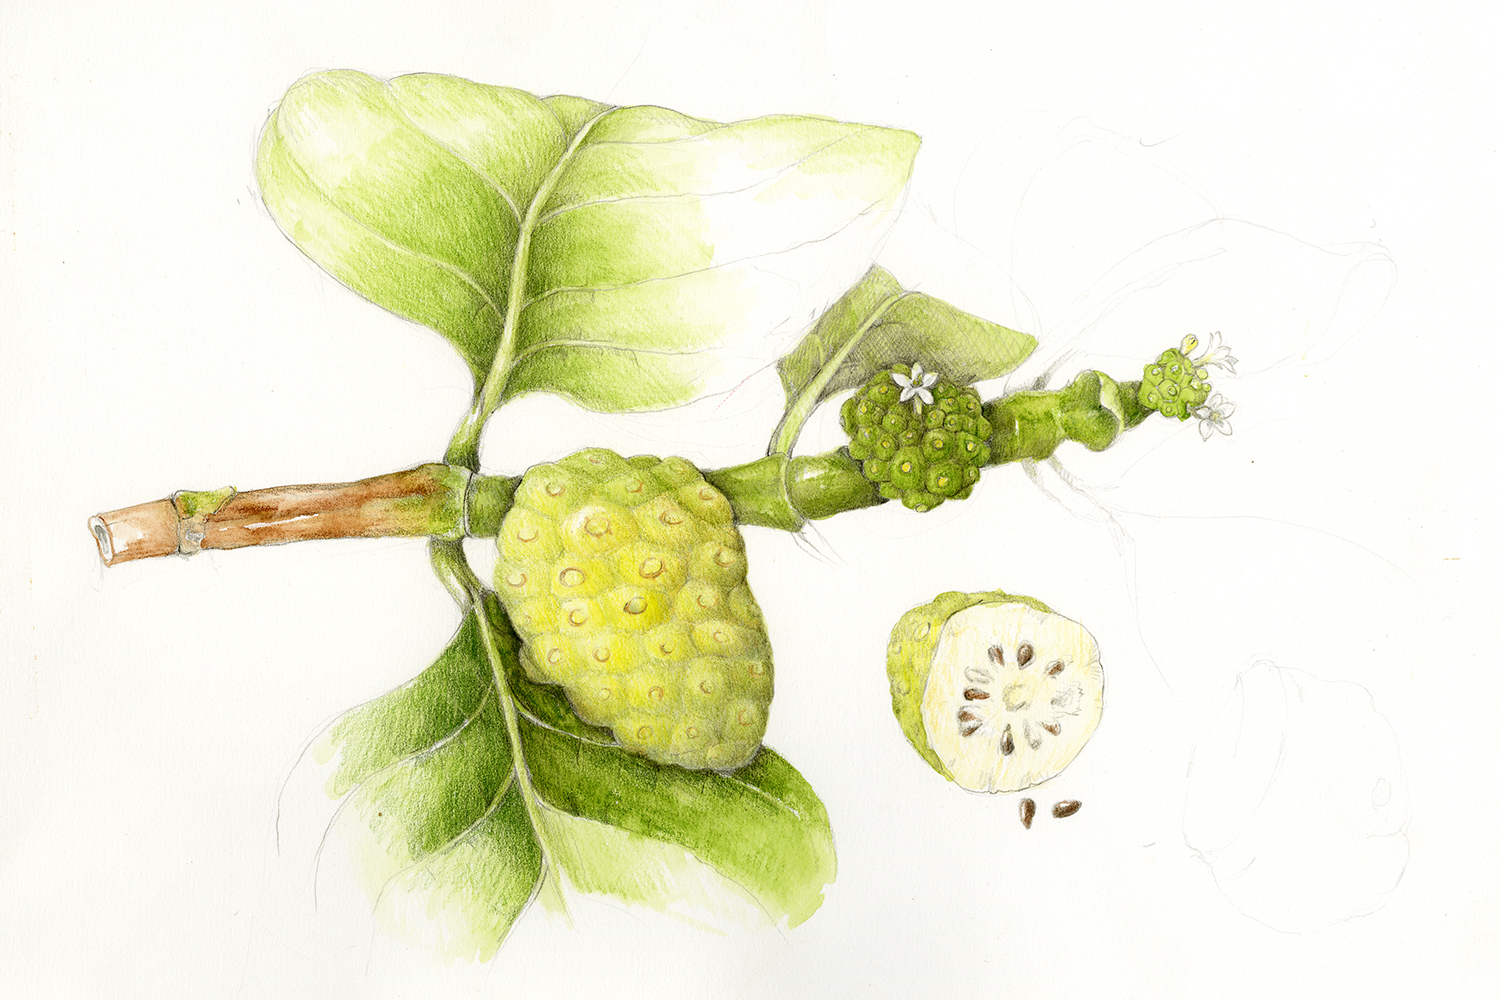 Noni/Indian Mulberry - Morinda citrifolia